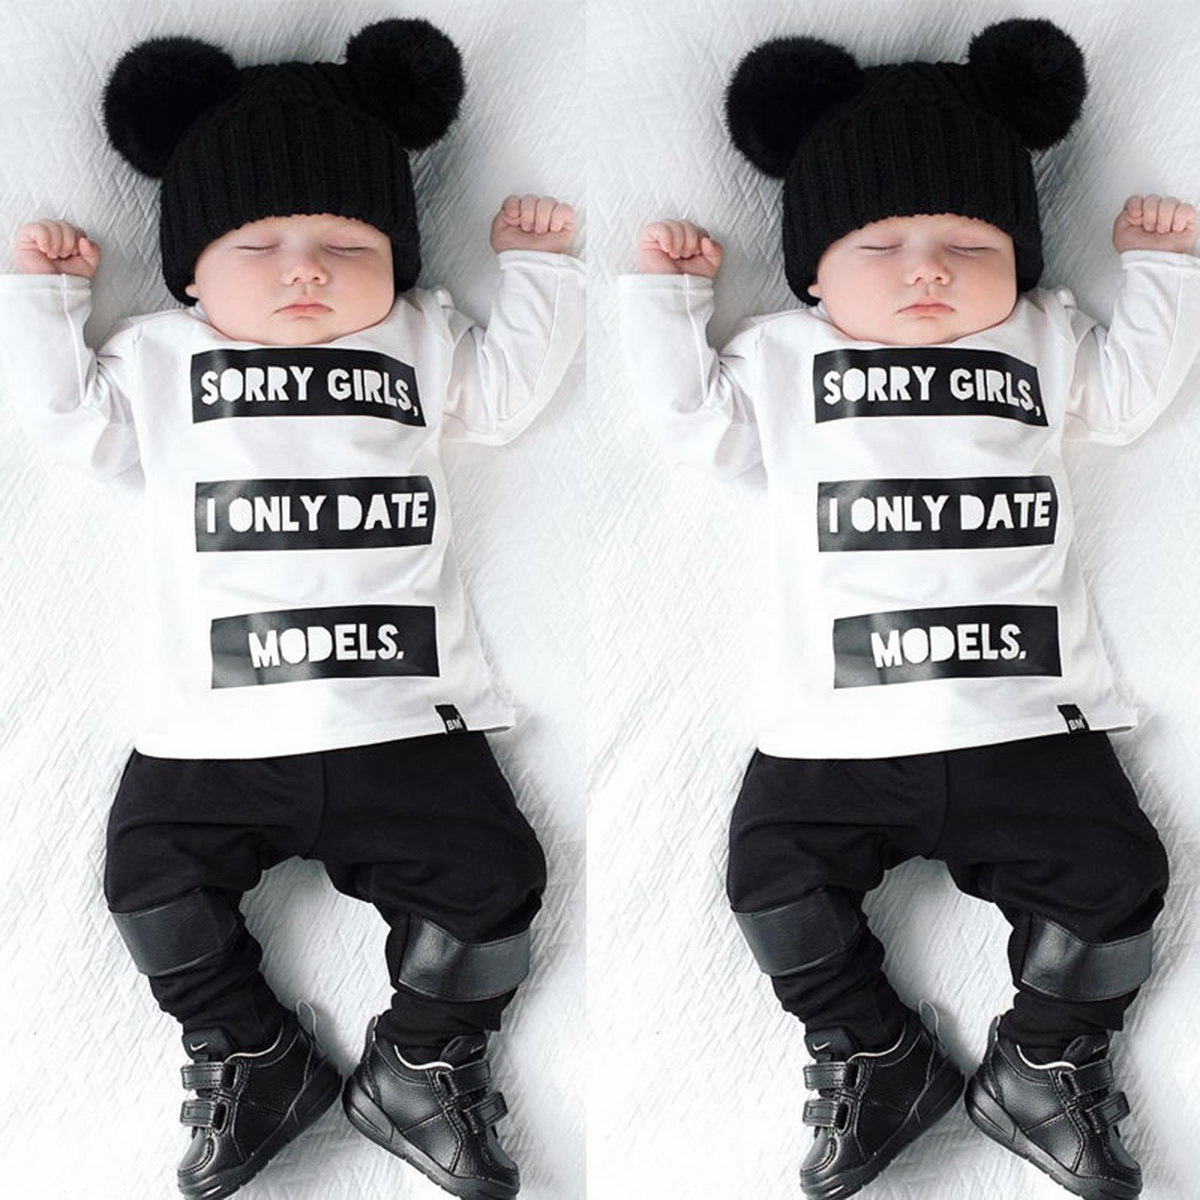 Black t shirt for babies - 2pcs Infant Baby Kids Boys Long Sleeve T Shirt Tops Pants Newborn Outfits Black White Sorry Girls Letter Suit Baby Boy Clothes